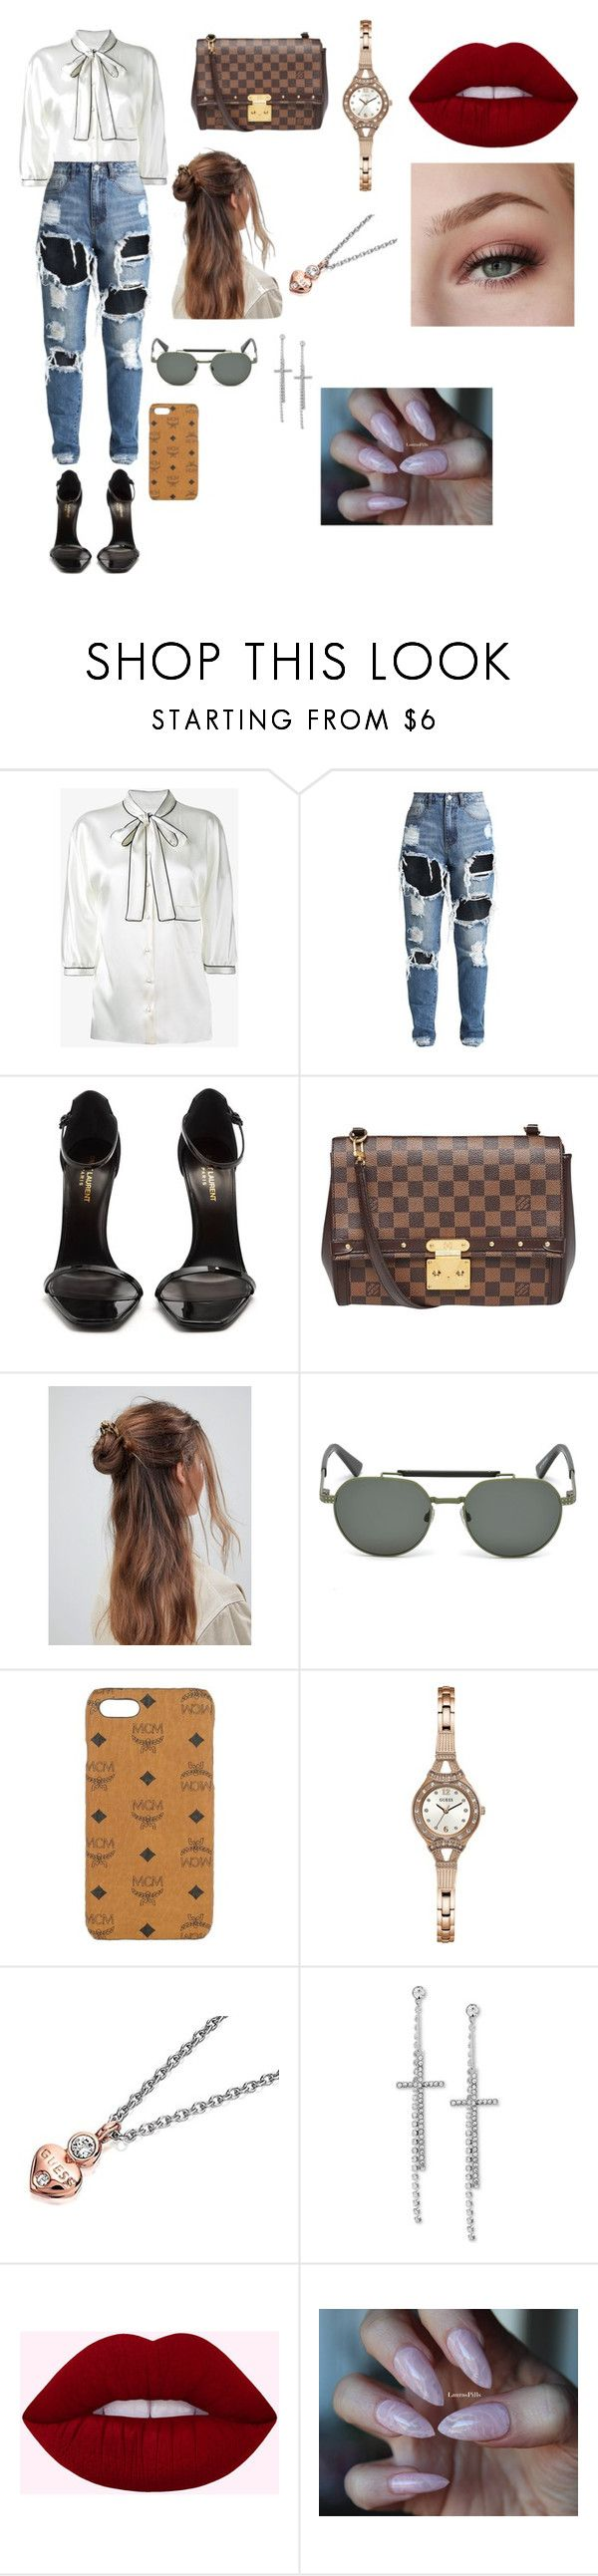 """Instagram"" by amandaemiily on Polyvore featuring Dolce&Gabbana, Yves Saint Laurent, Louis Vuitton, ASOS, Diesel, MCM e GUESS"